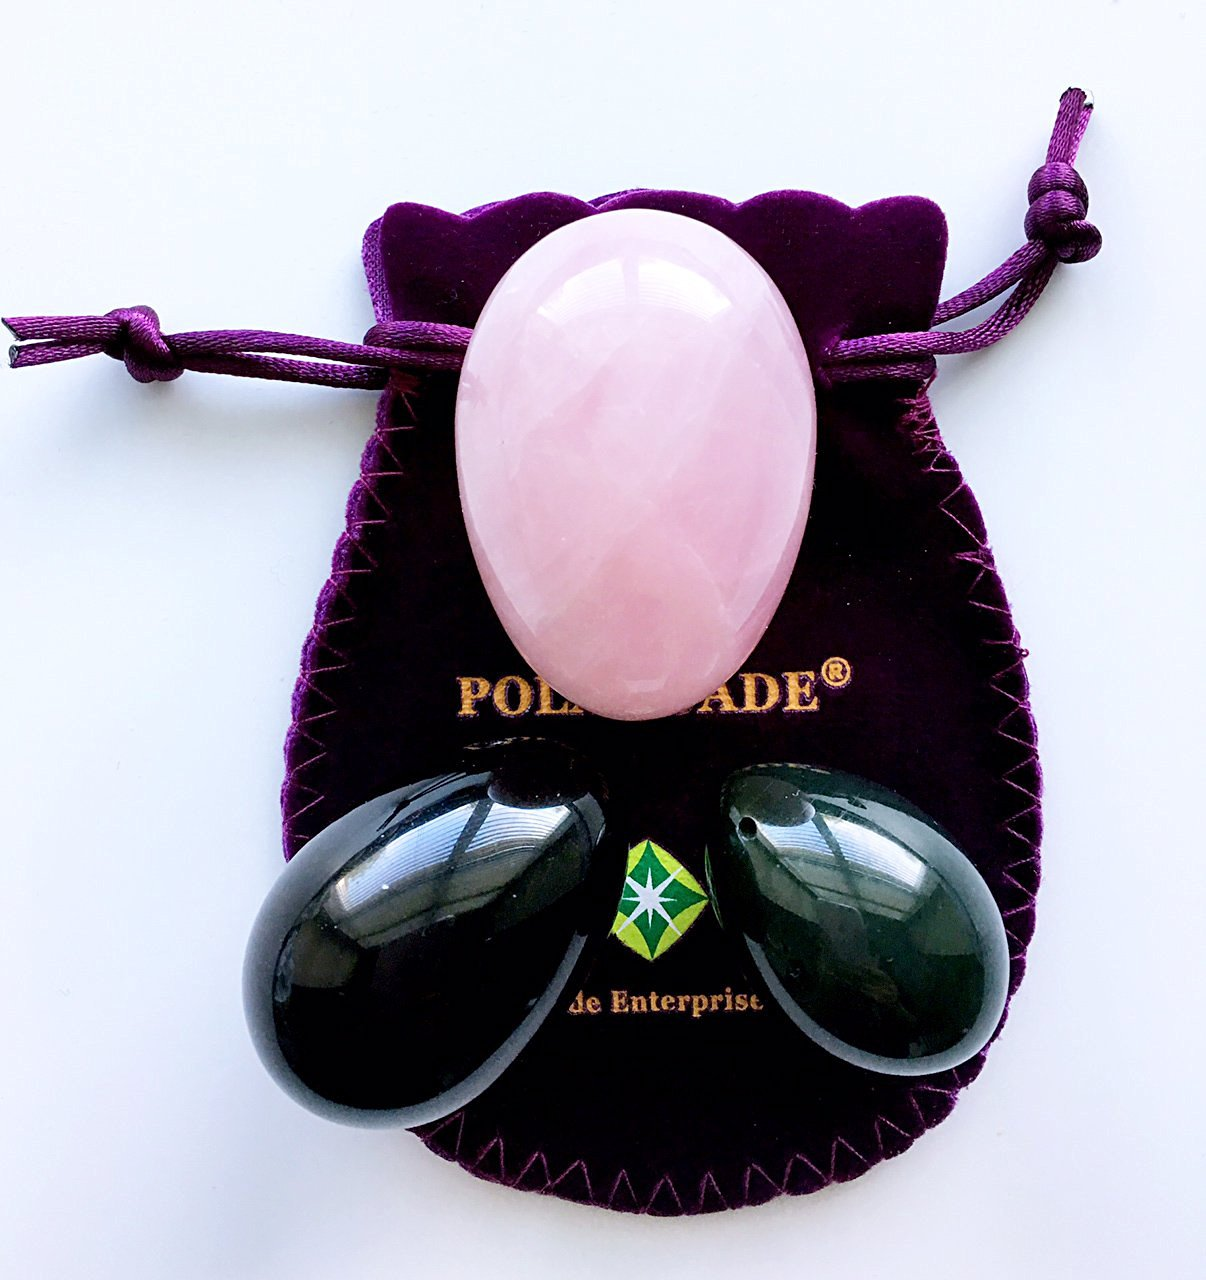 Cheap Jade Eggs Drilled Decoration Find Jade Eggs Drilled